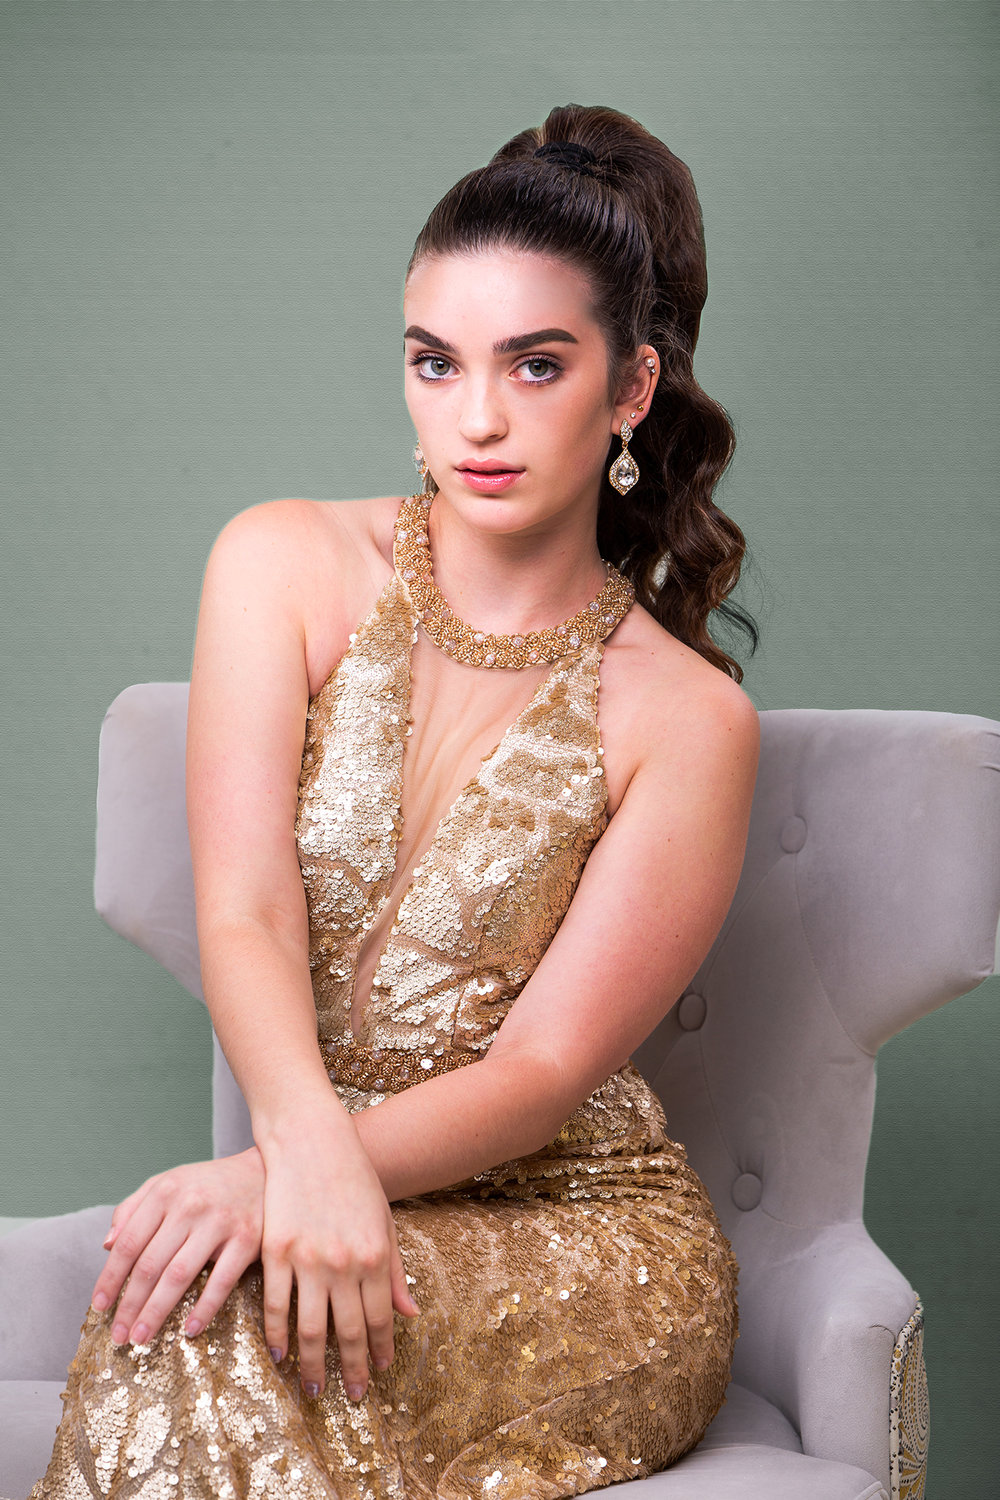 Stunning-Portrait-Gold-Dress-Womens-Photo-Shoots-Key-West.jpg